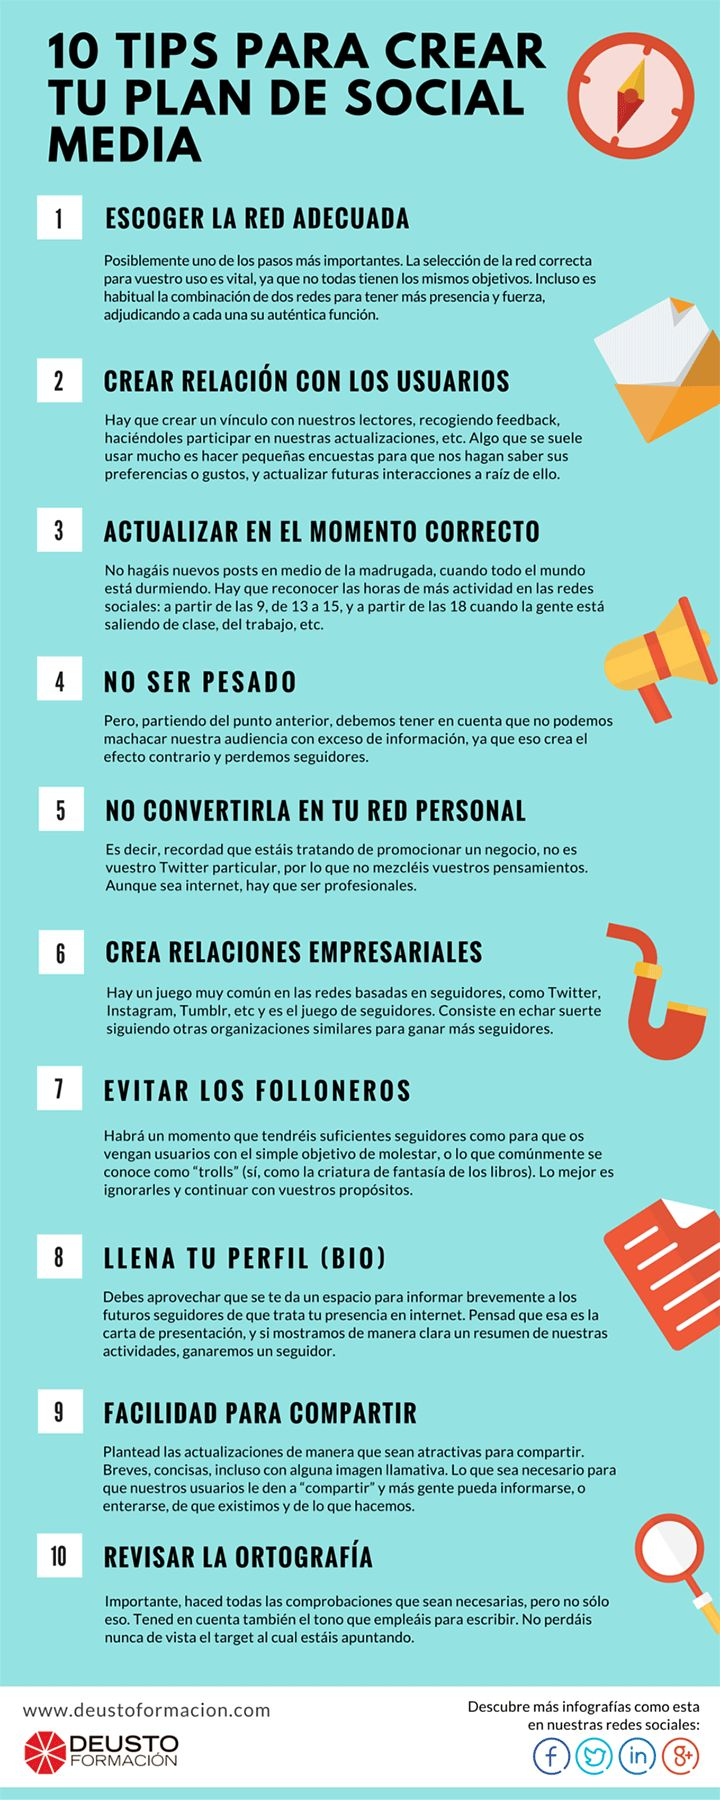 10 tips para crear tu plan de social media. Infografía en español. #CommunityManager